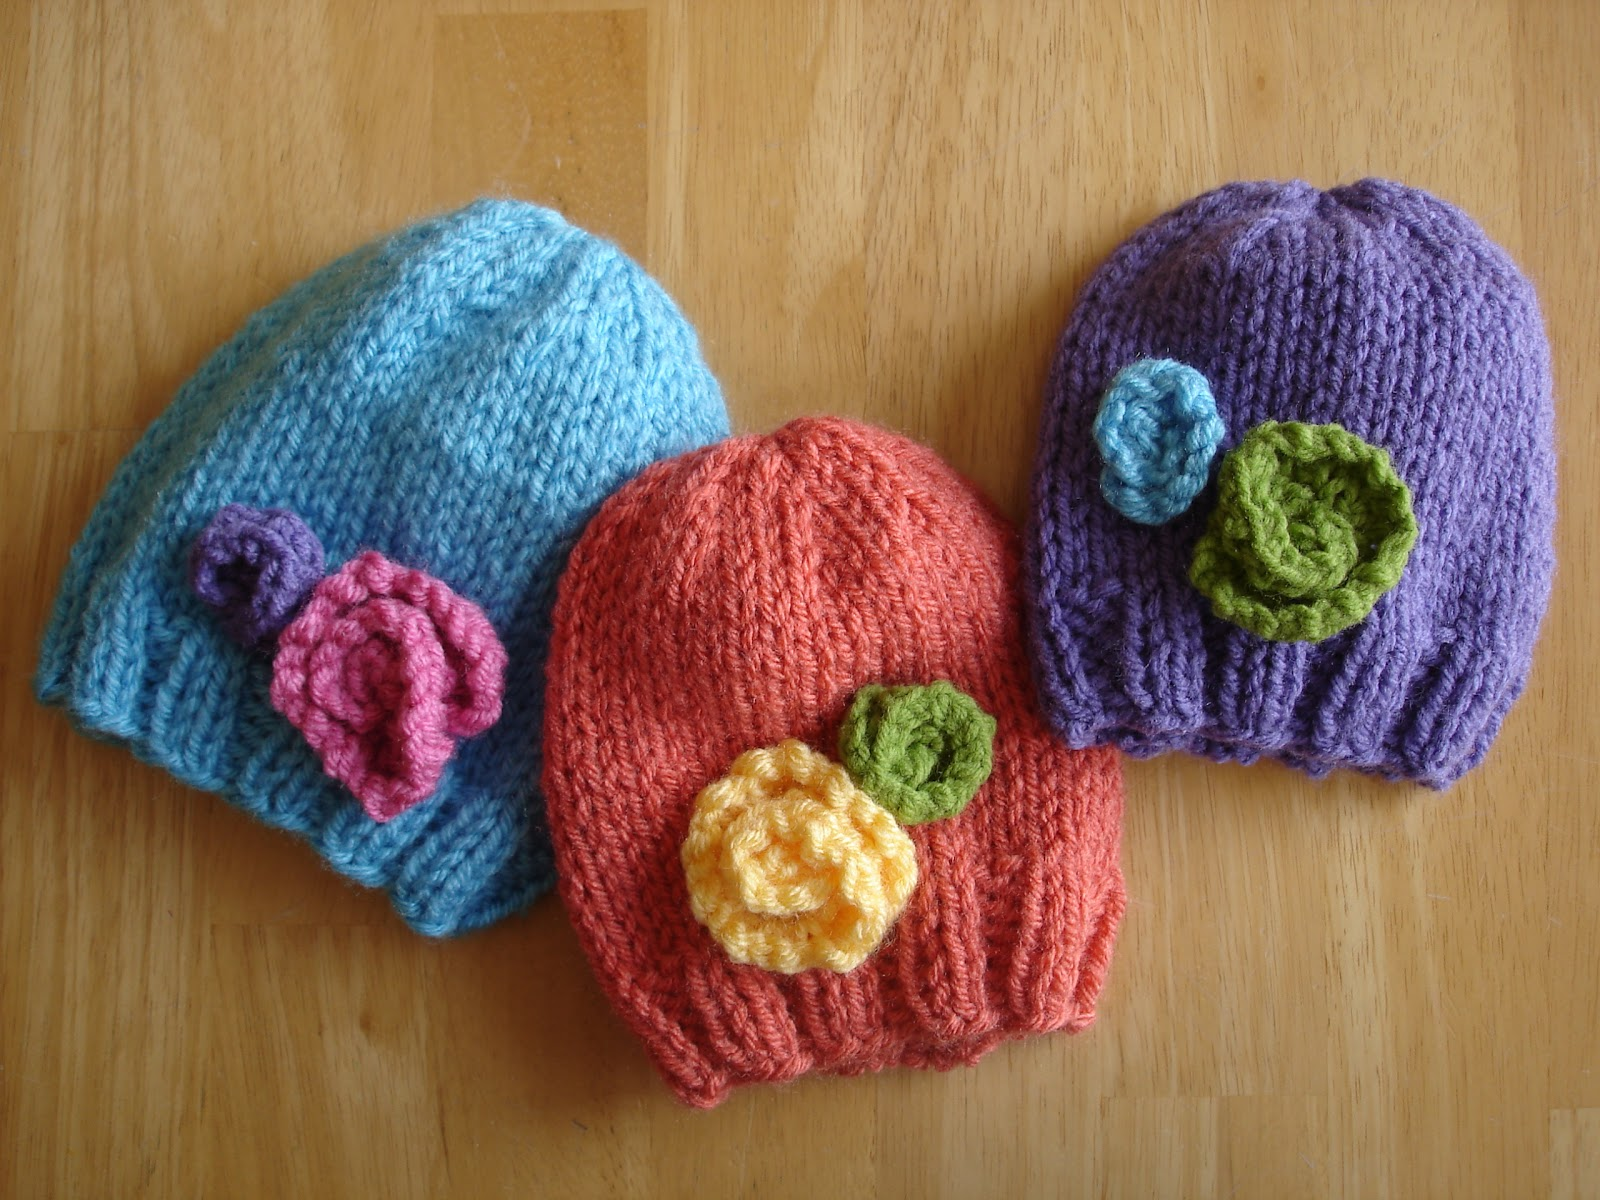 Free Baby Hats Knitting Patterns : Fiber Flux: Free Knitting Pattern! Baby In Bloom Hats